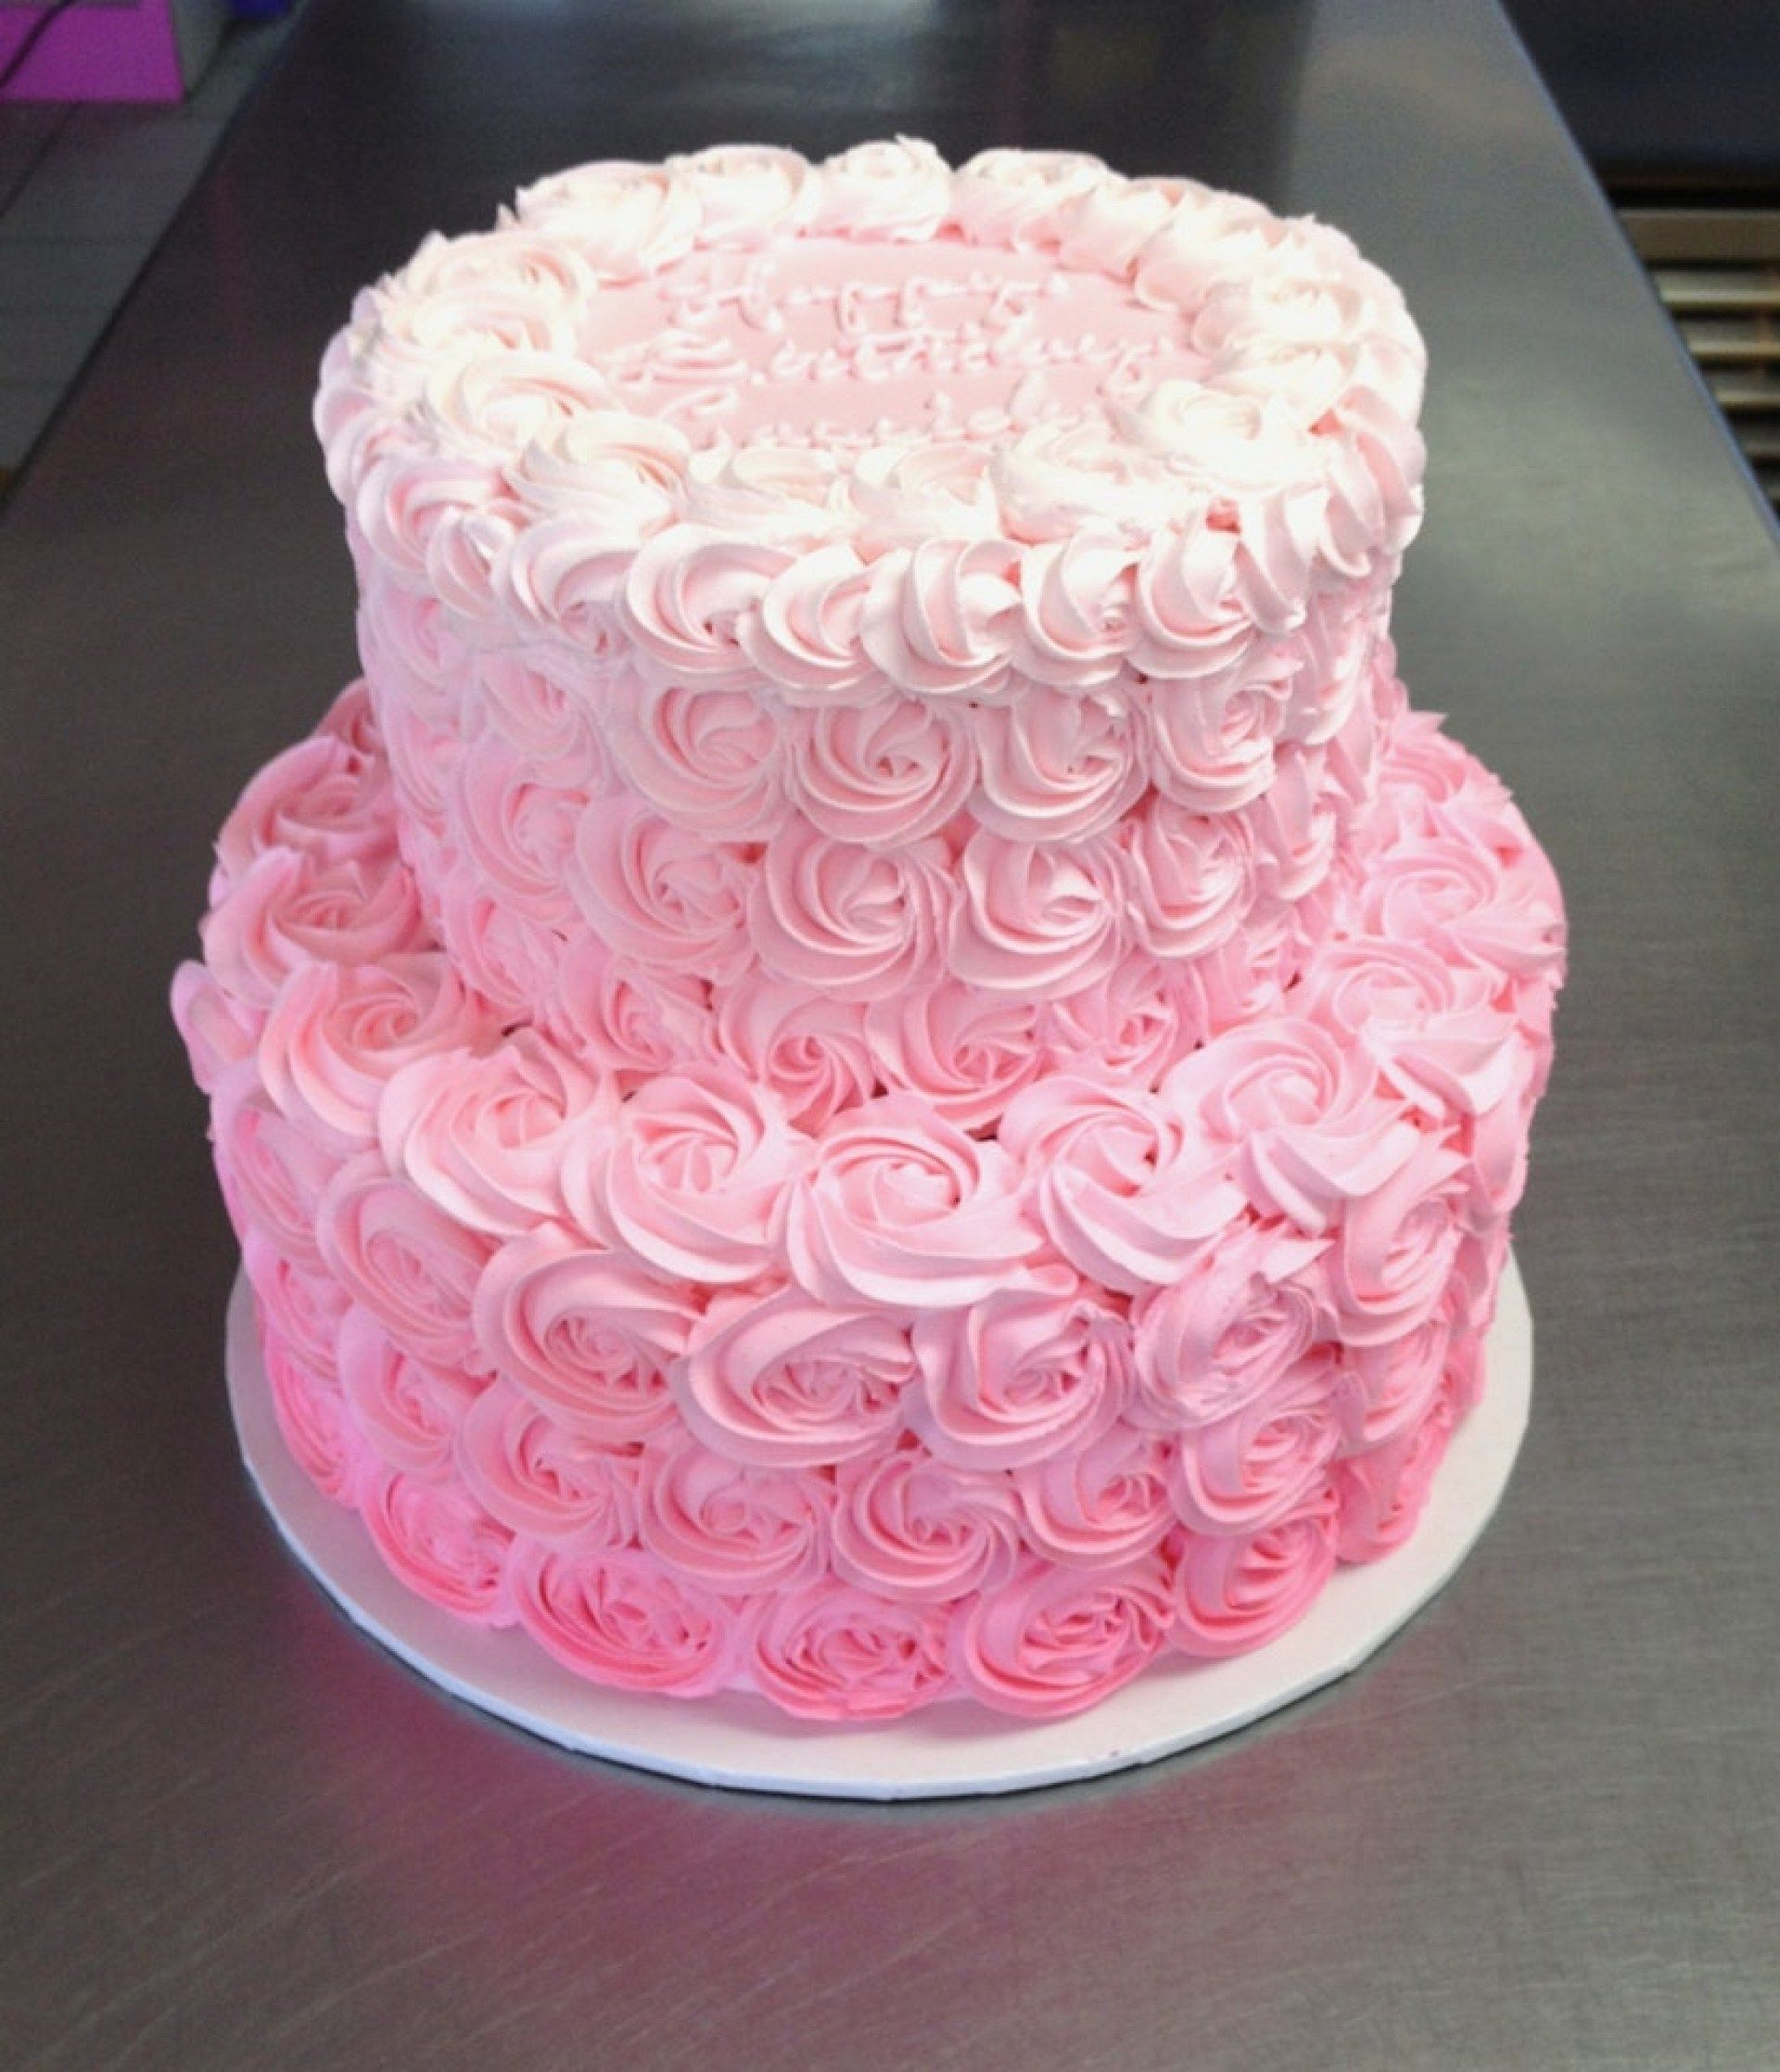 20 Marvelous Image Of Sam S Club Bakery Birthday Cakes